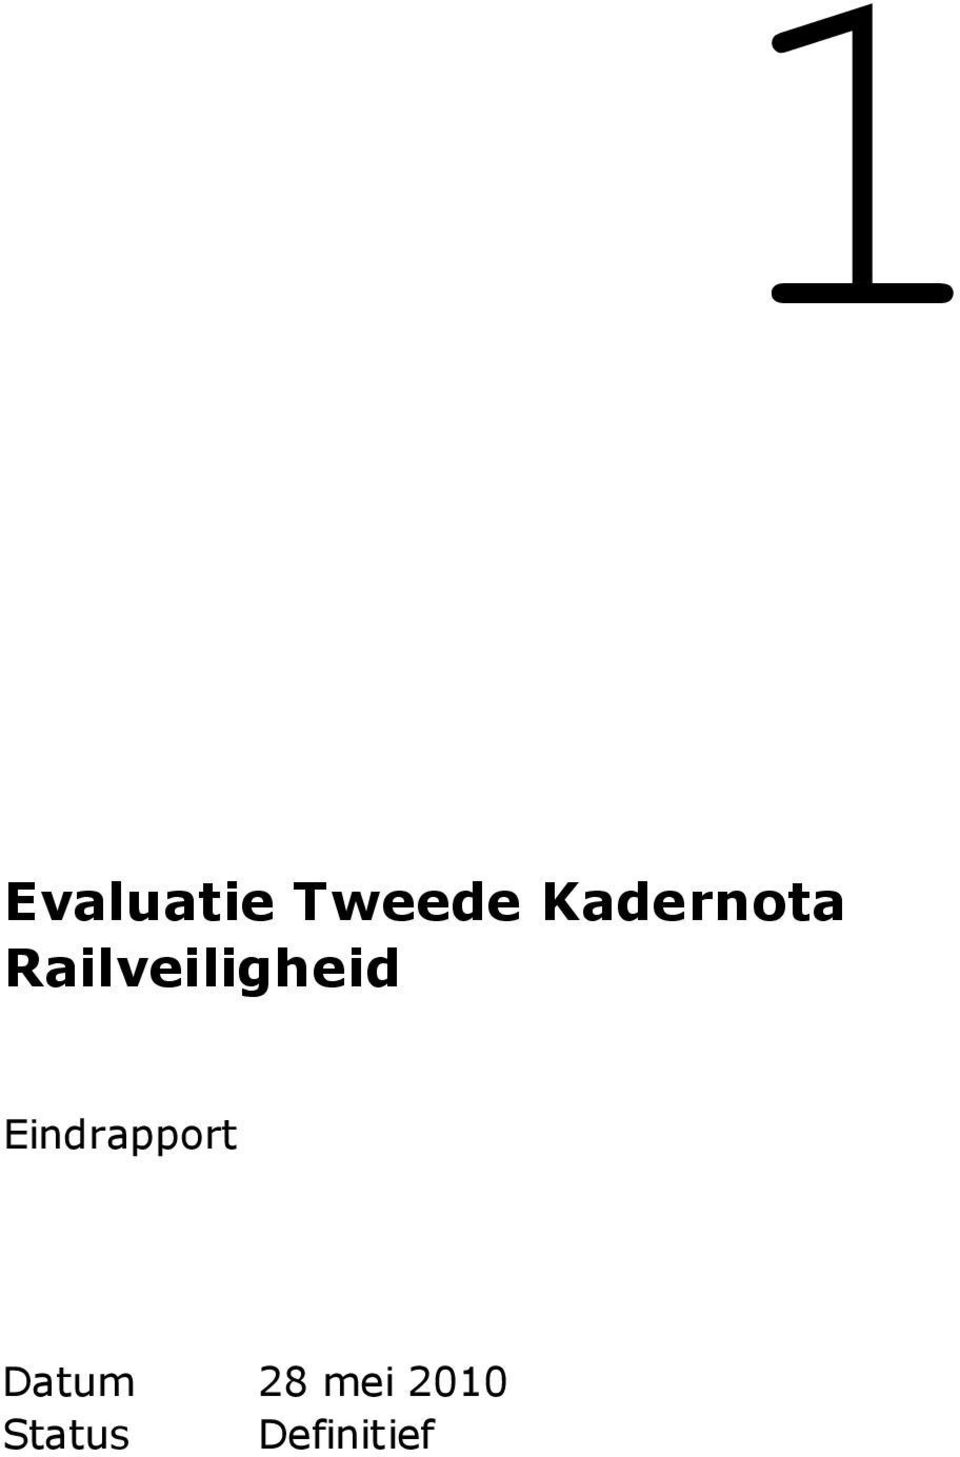 Railveiligheid